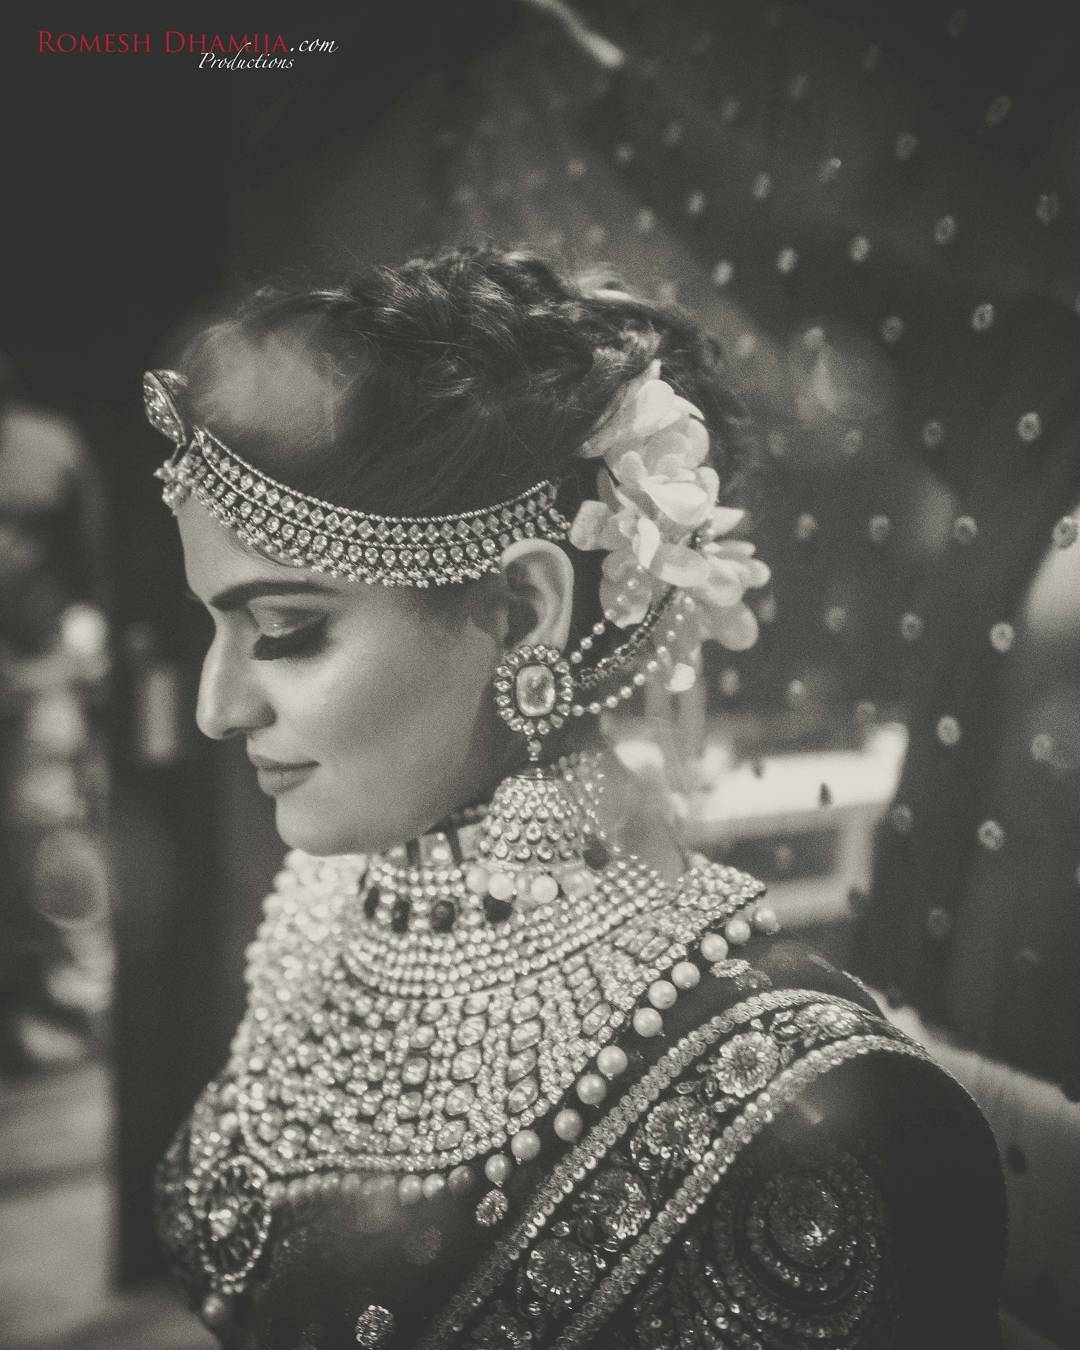 black and white photos, black and white photography, wedding photography, wedding photographer- romesh dhamija productions